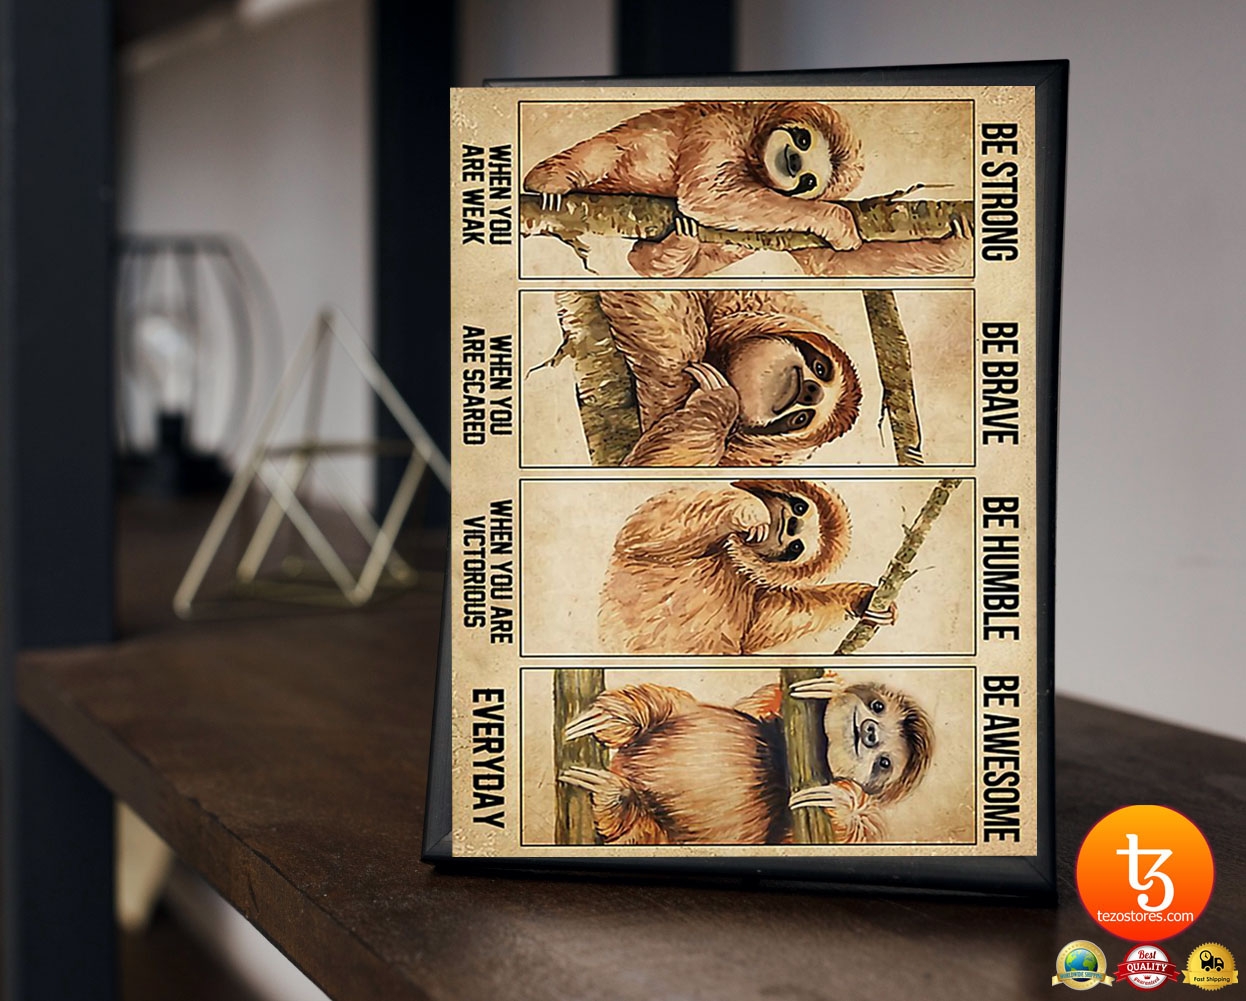 Sloth be strong be brave be humble be awesome poster 4